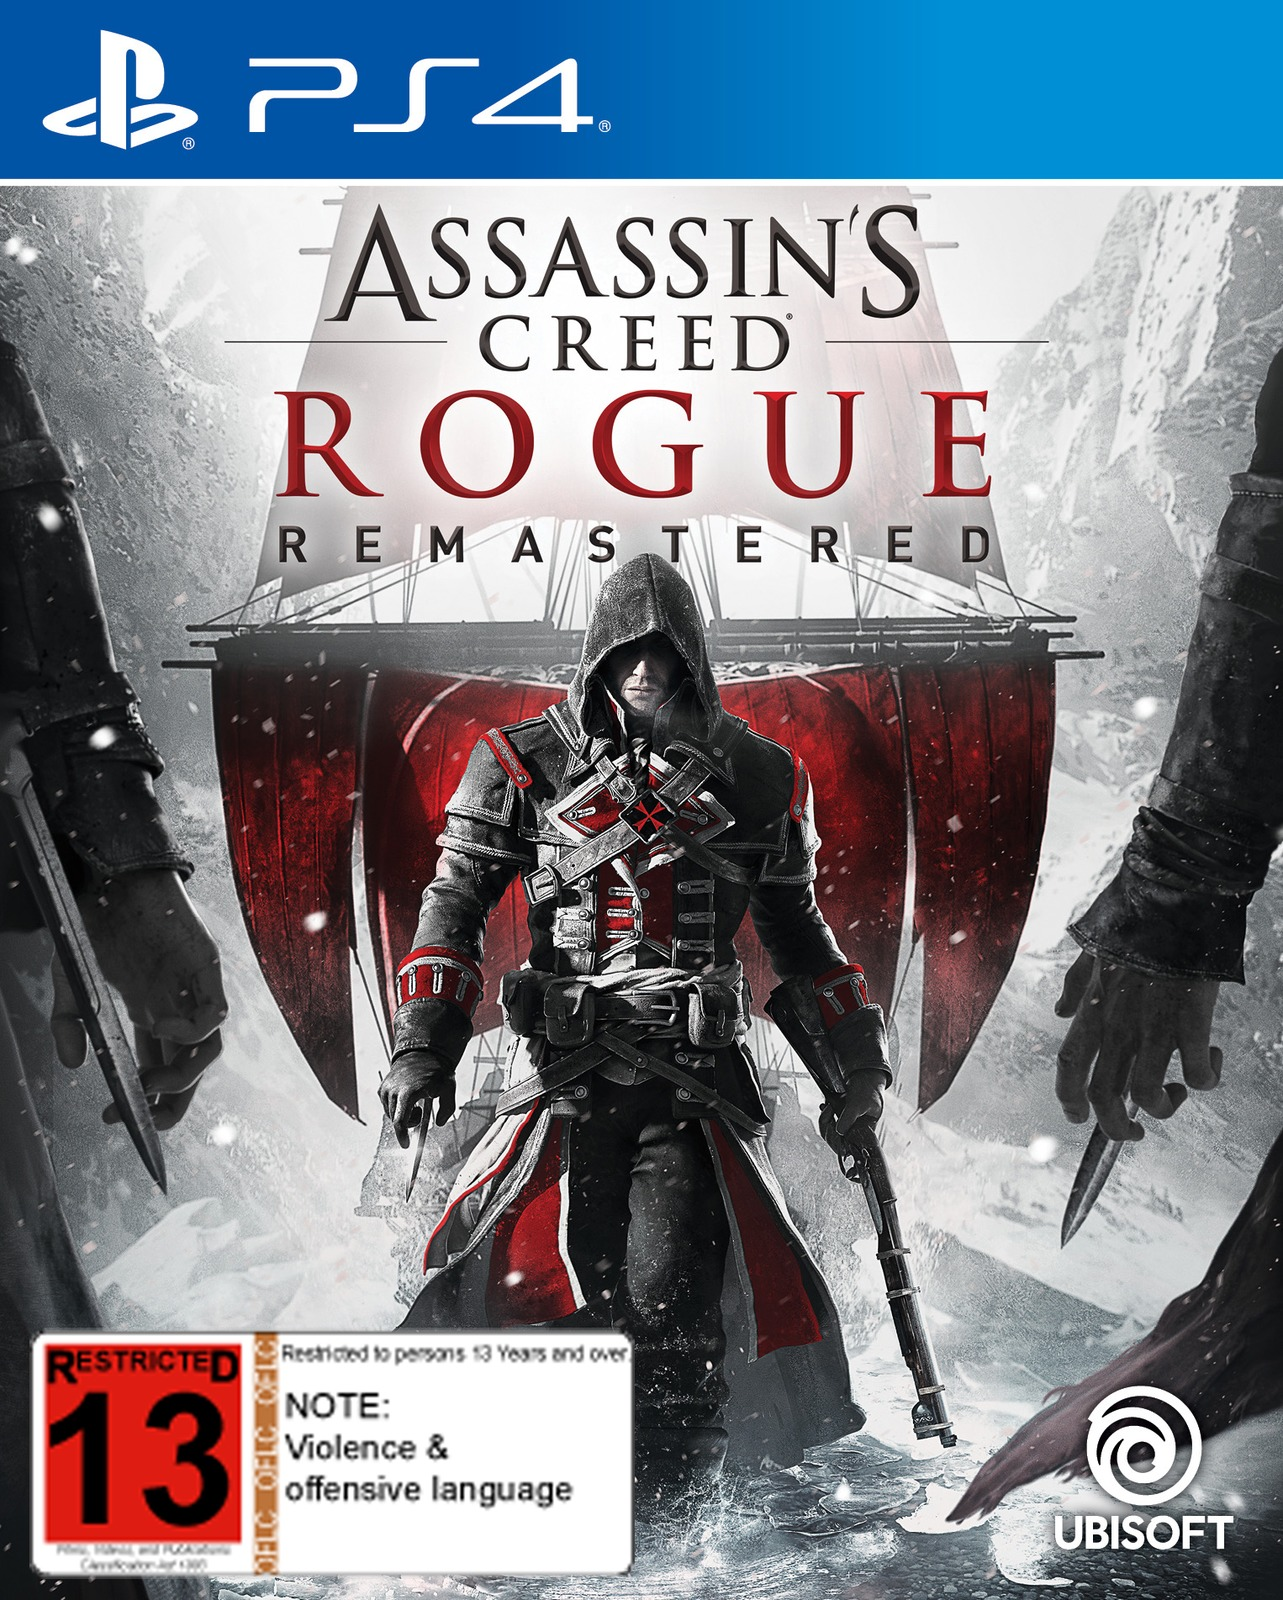 Assassin's Creed: Rogue Remastered for PS4 image